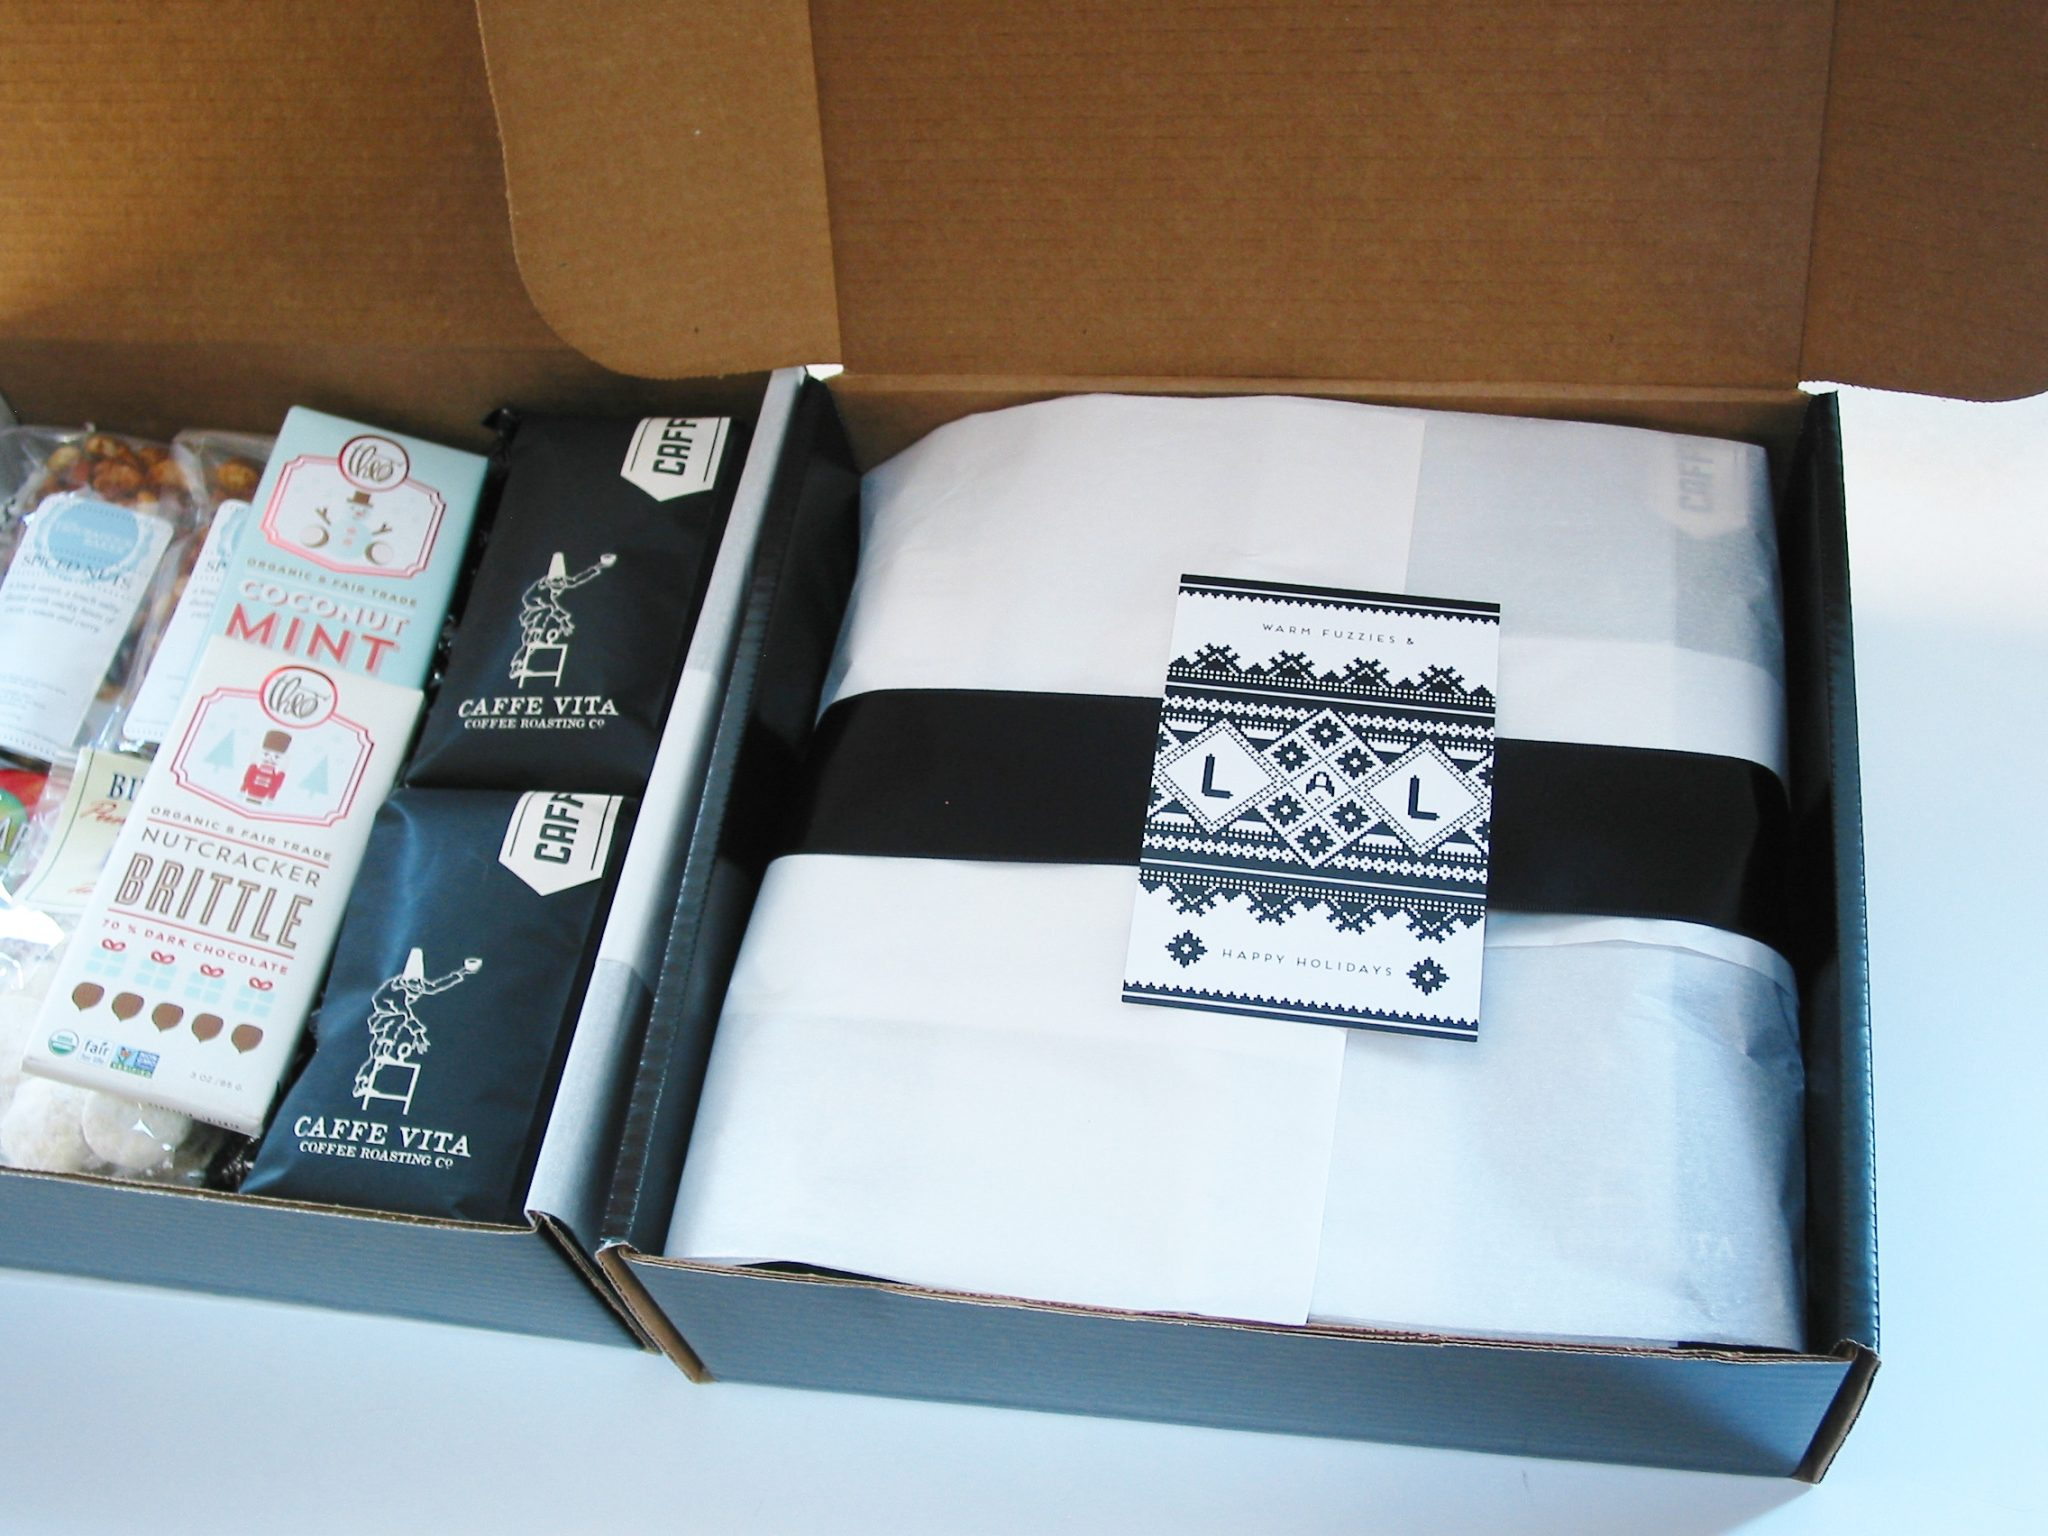 bumble B design's Custom Business Gift Boxes with Caffe Vita coffee, Theo chocolate & other local goodies